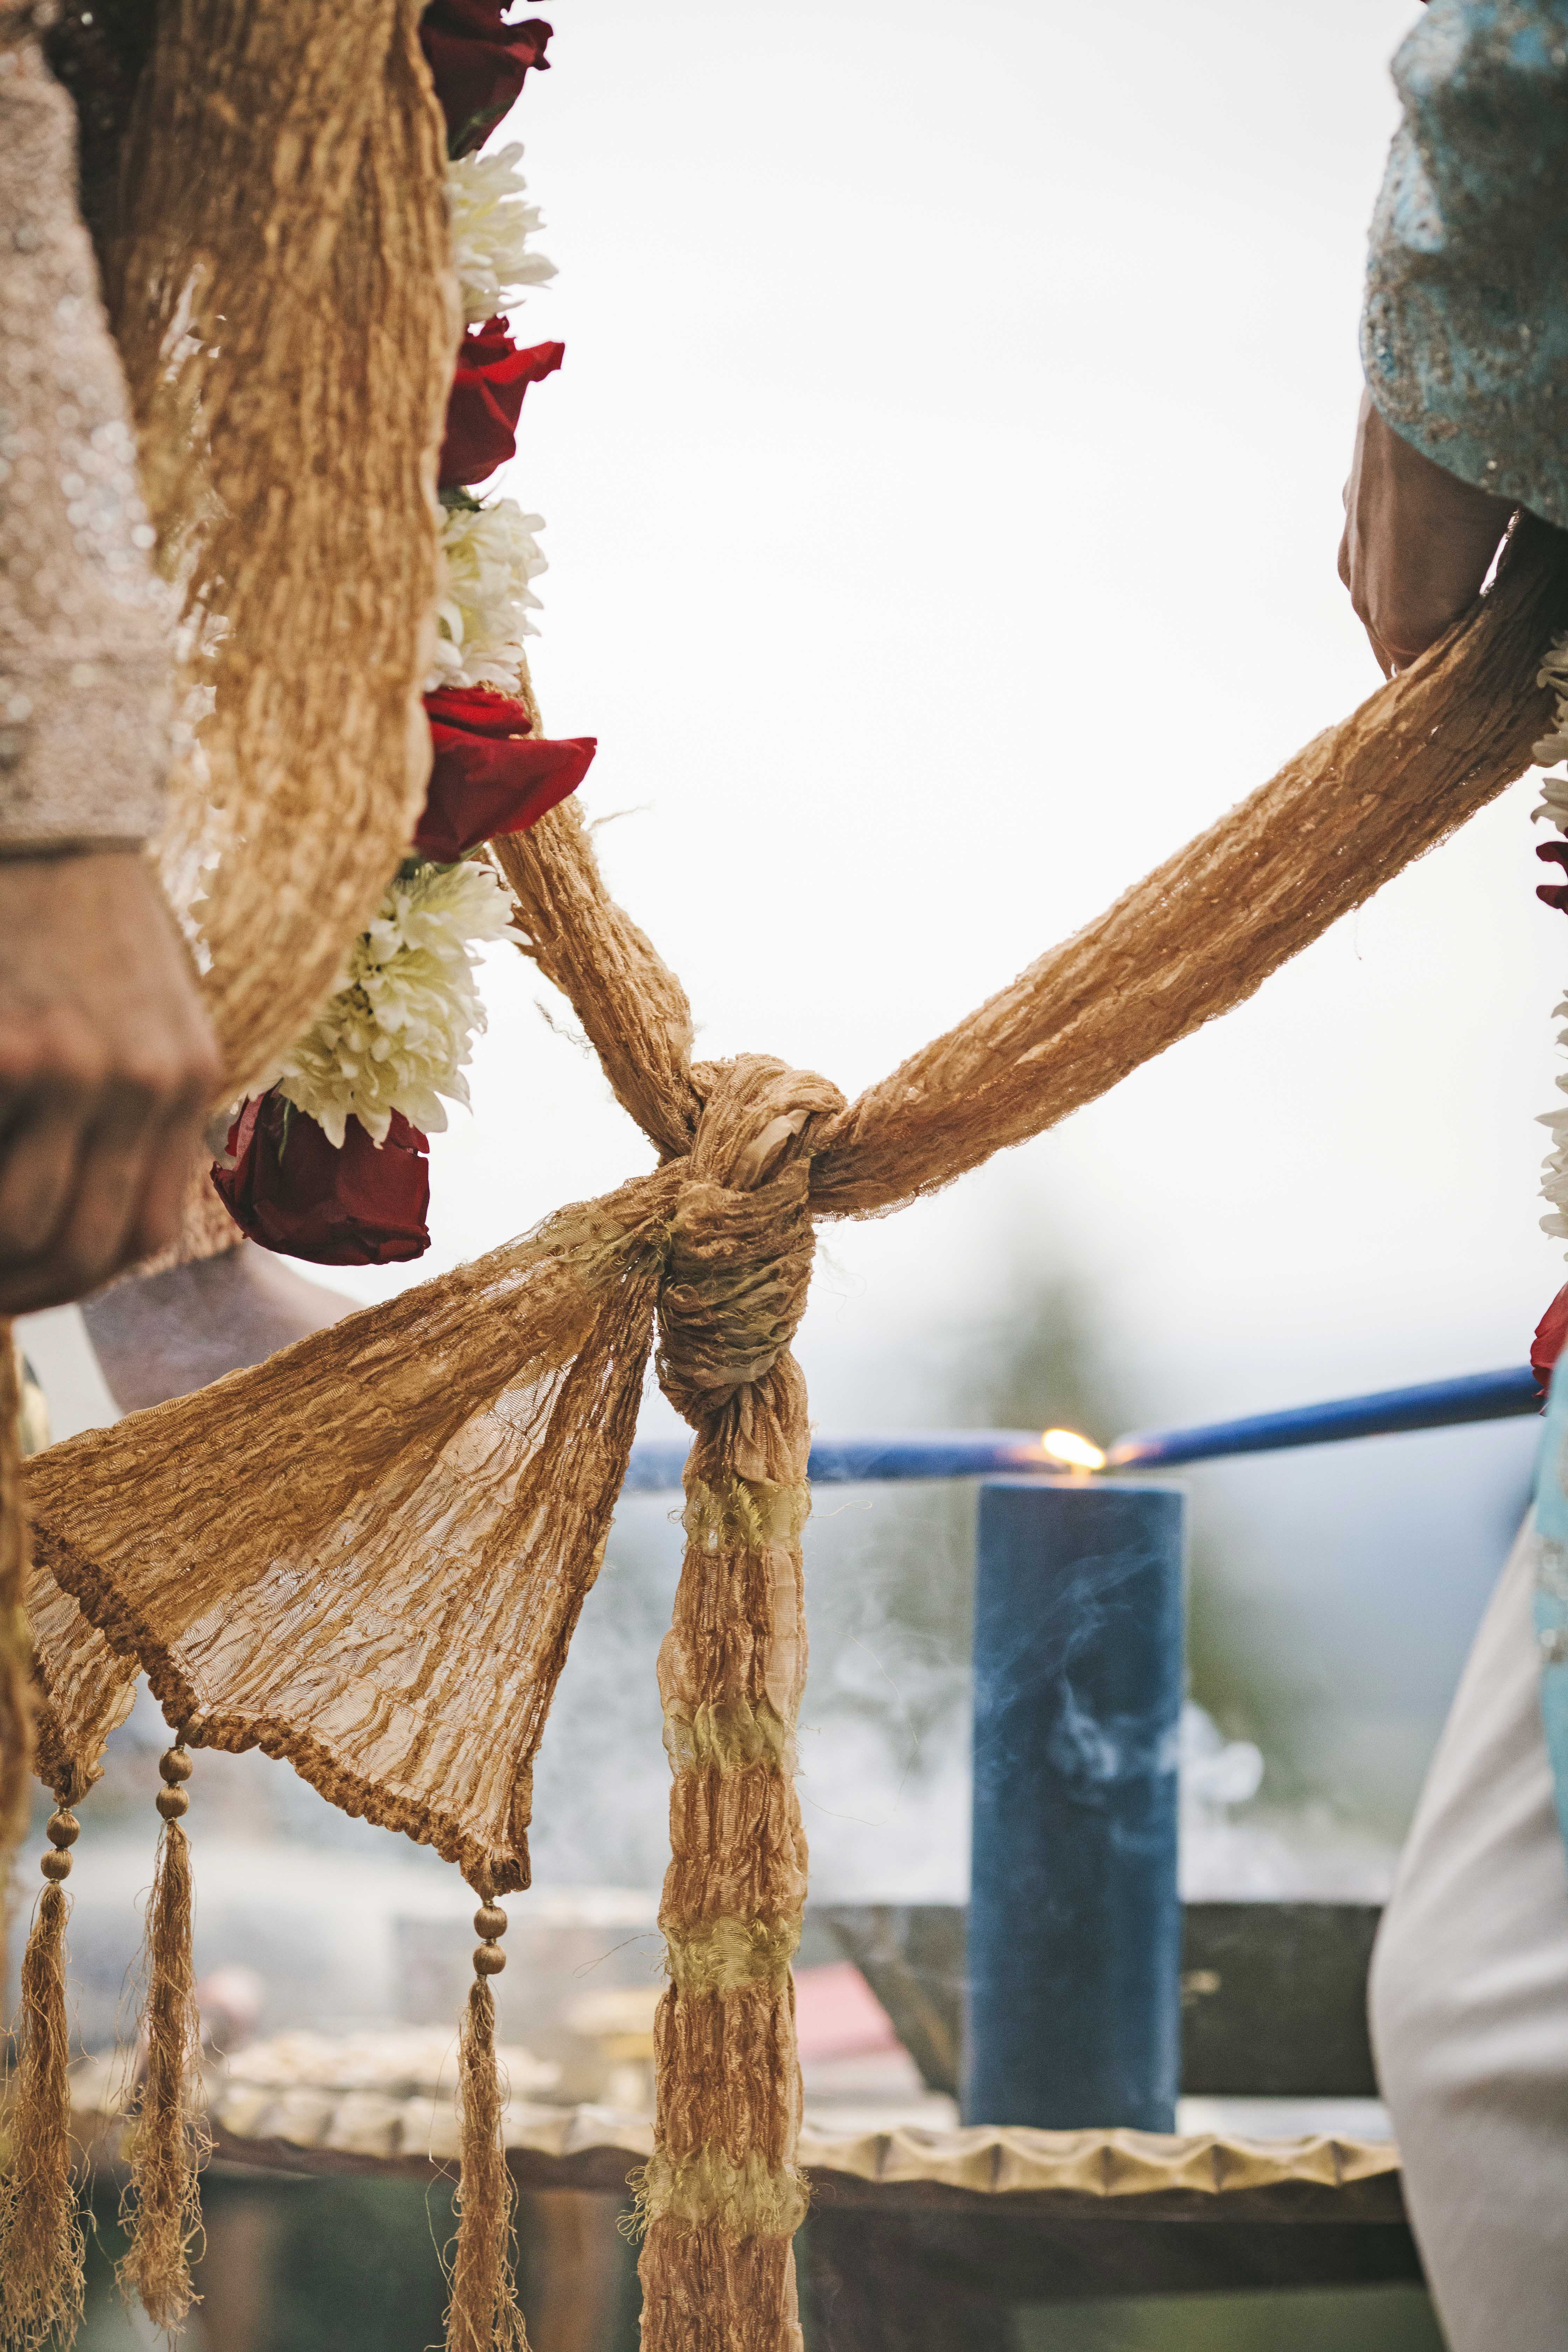 Tying the Garlands